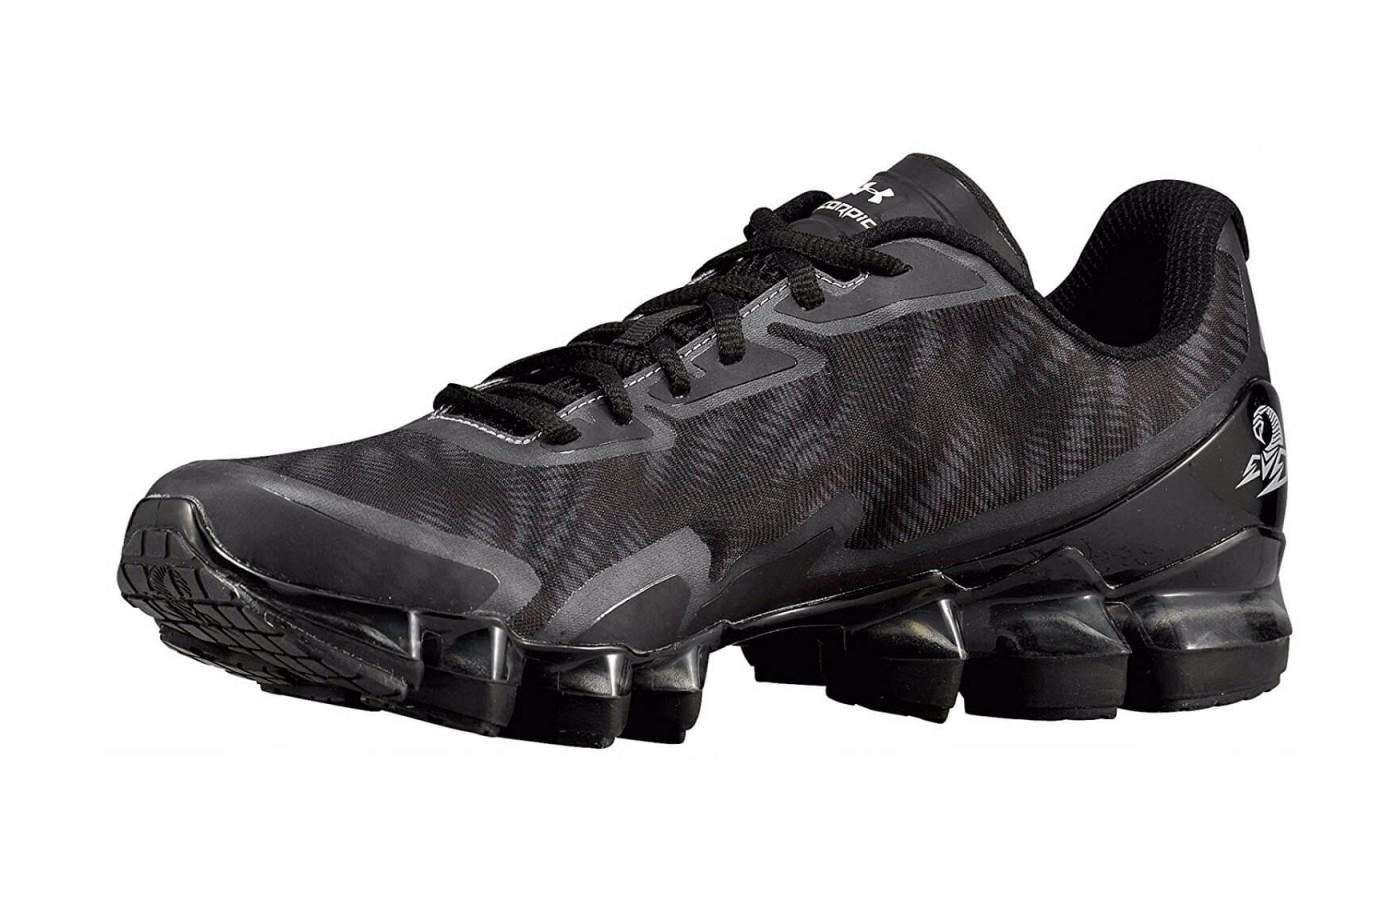 Black version of the Under Armour Scorpio 2